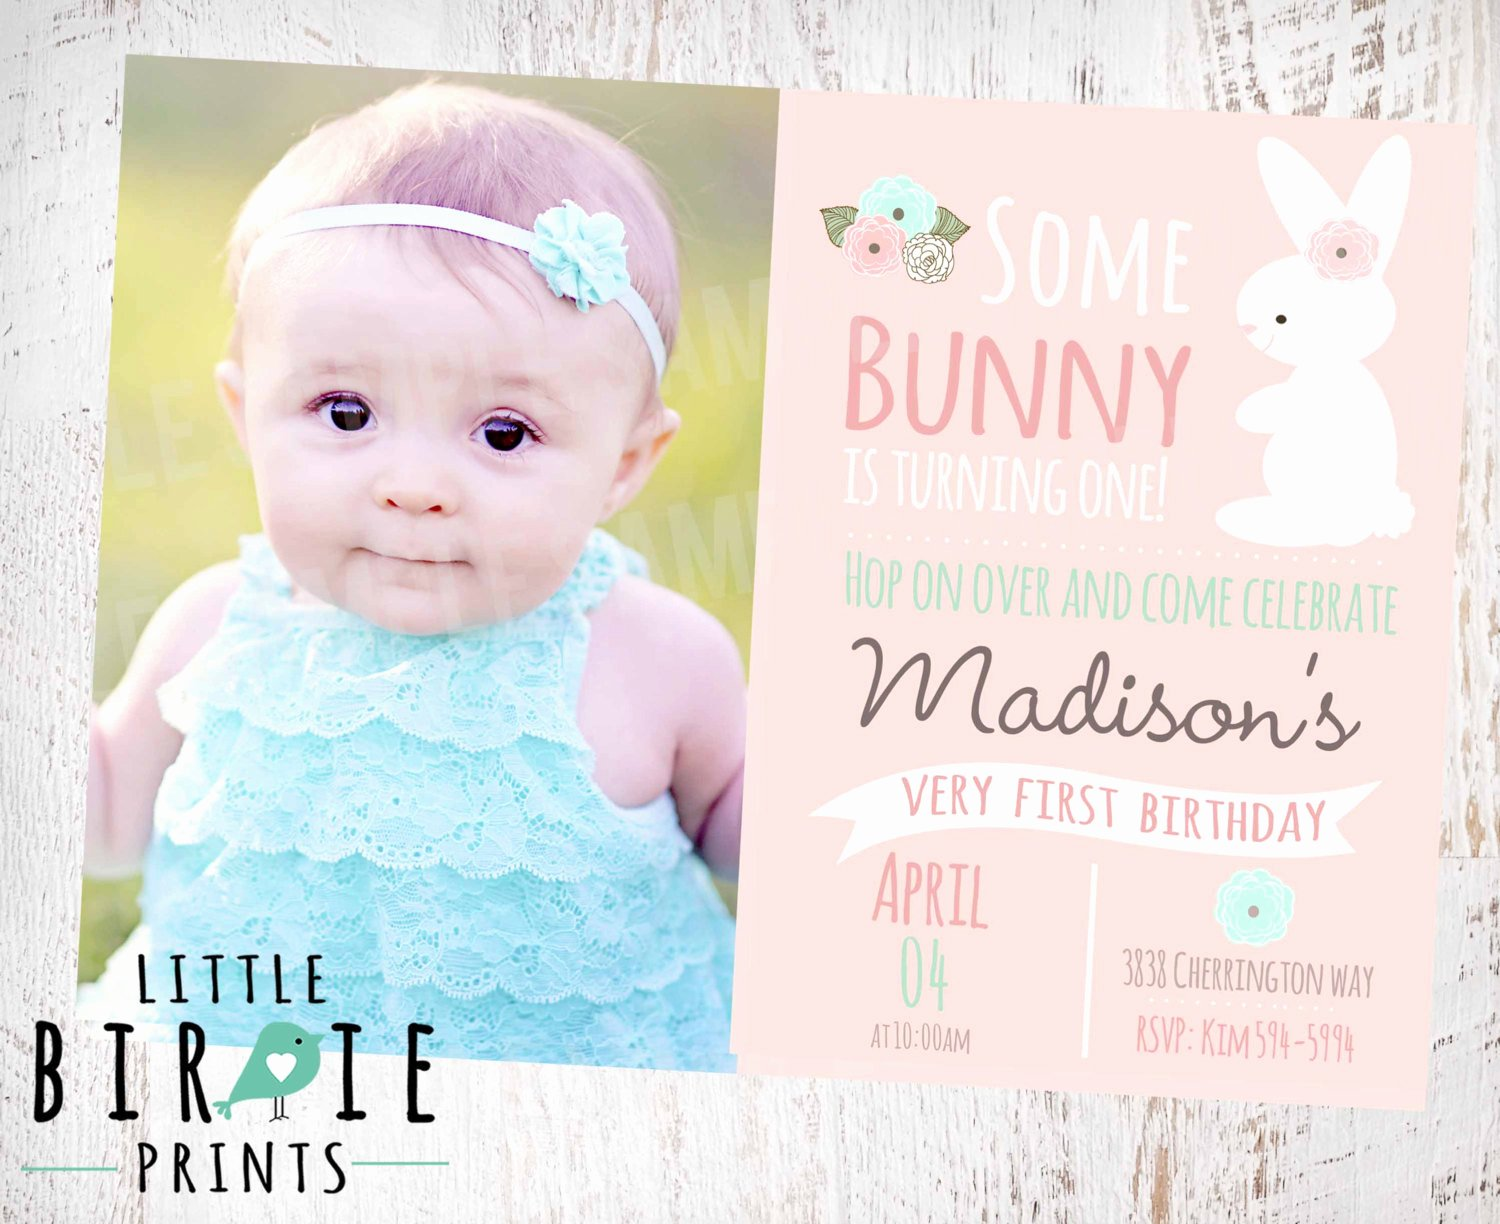 Bunny Birthday Invitation Template Inspirational Chandeliers & Pendant Lights